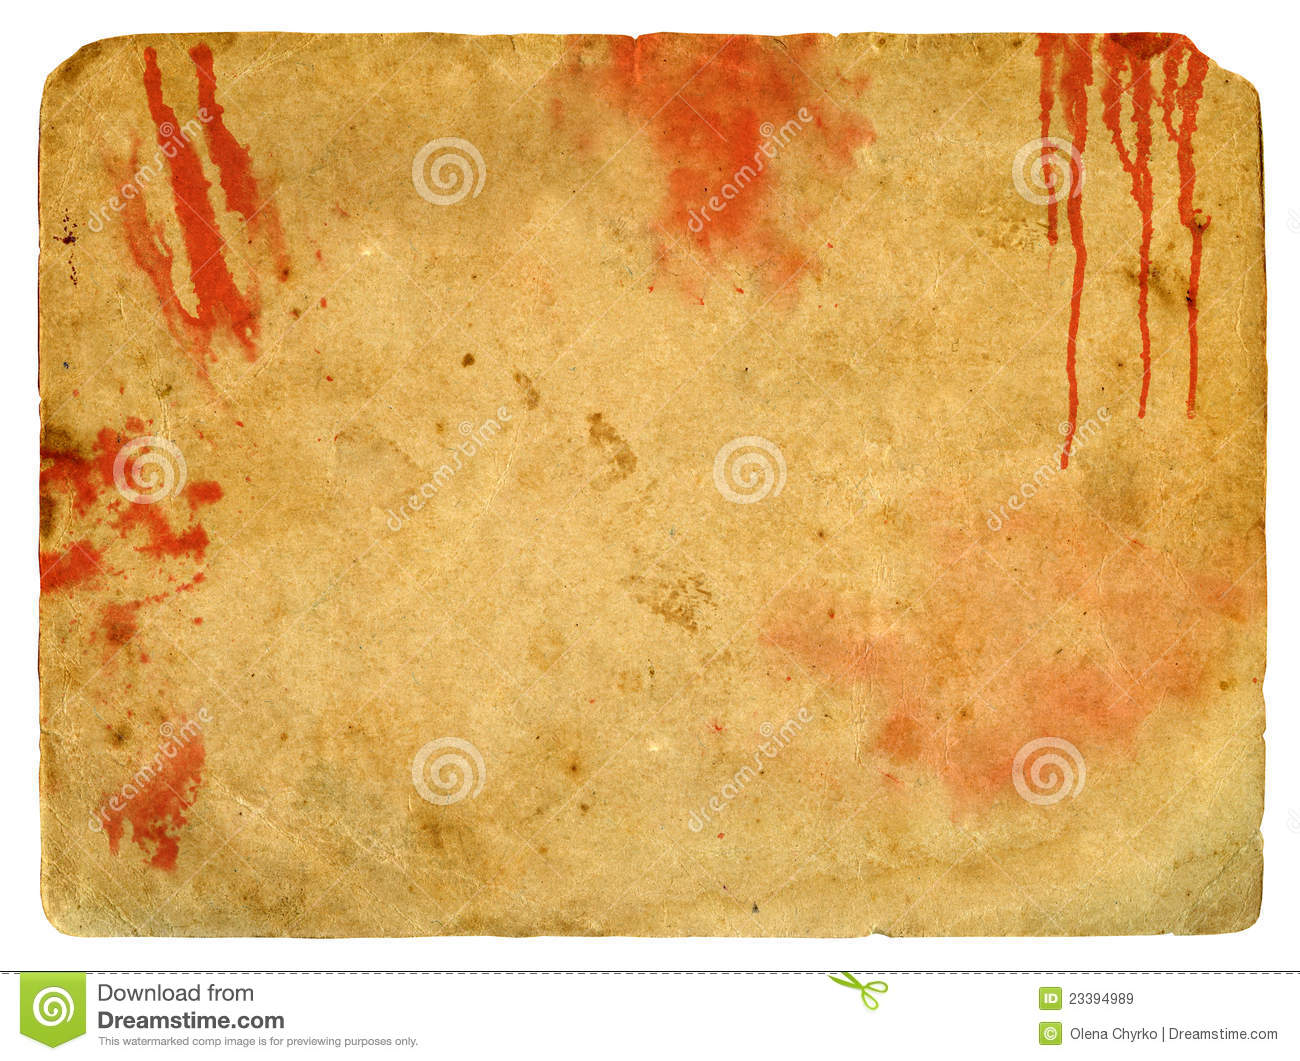 old paper with blood spots  stock illustration